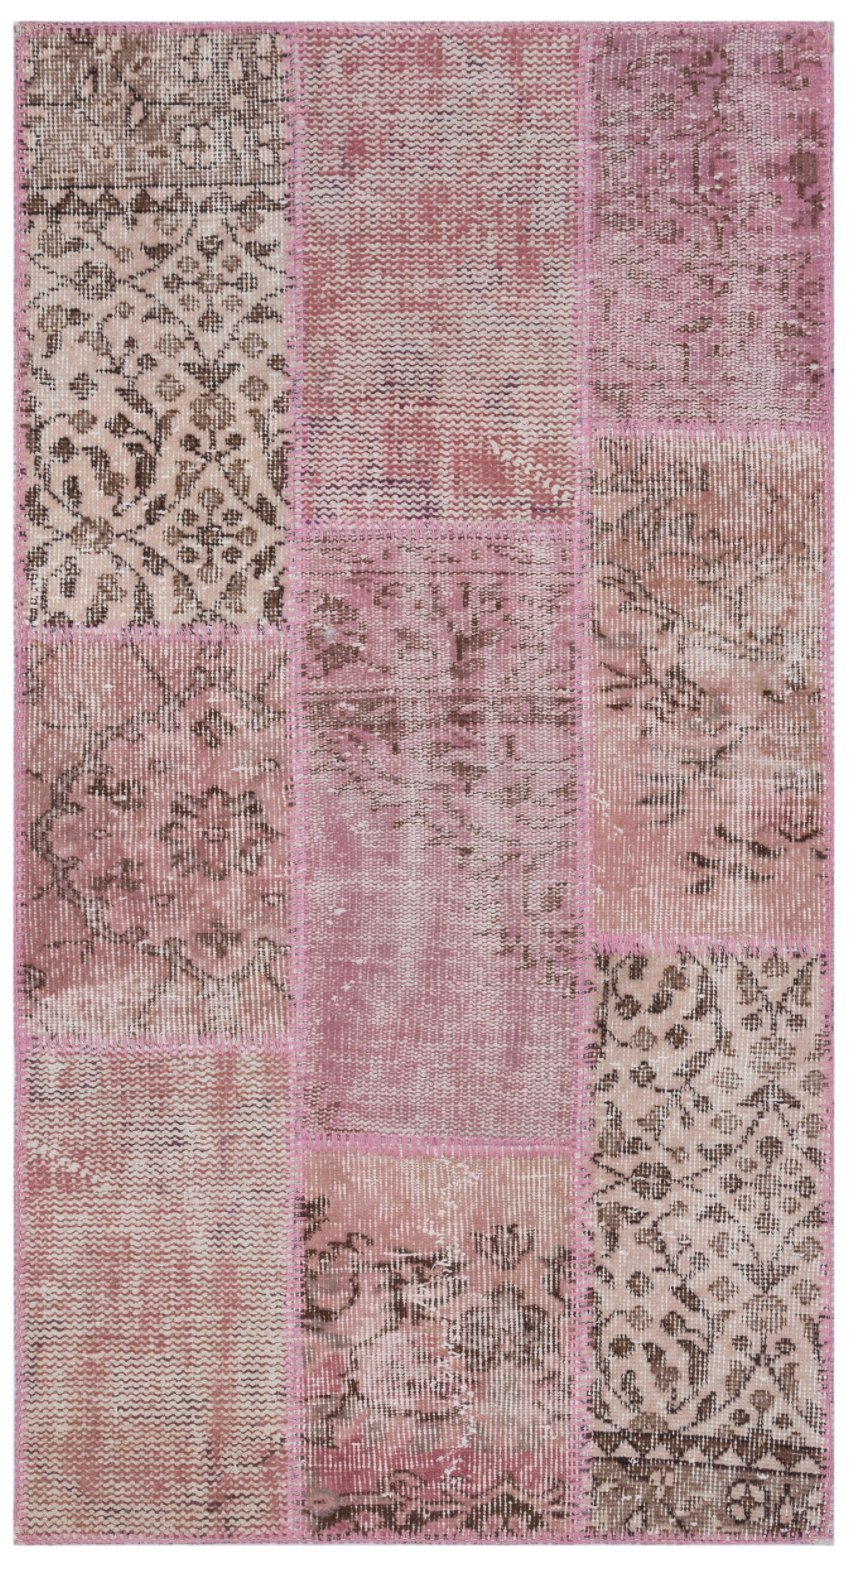 Pink Over Dyed Patchwork Unique Rug 2'7'' x 4'11'' ft 80 x 150 cm